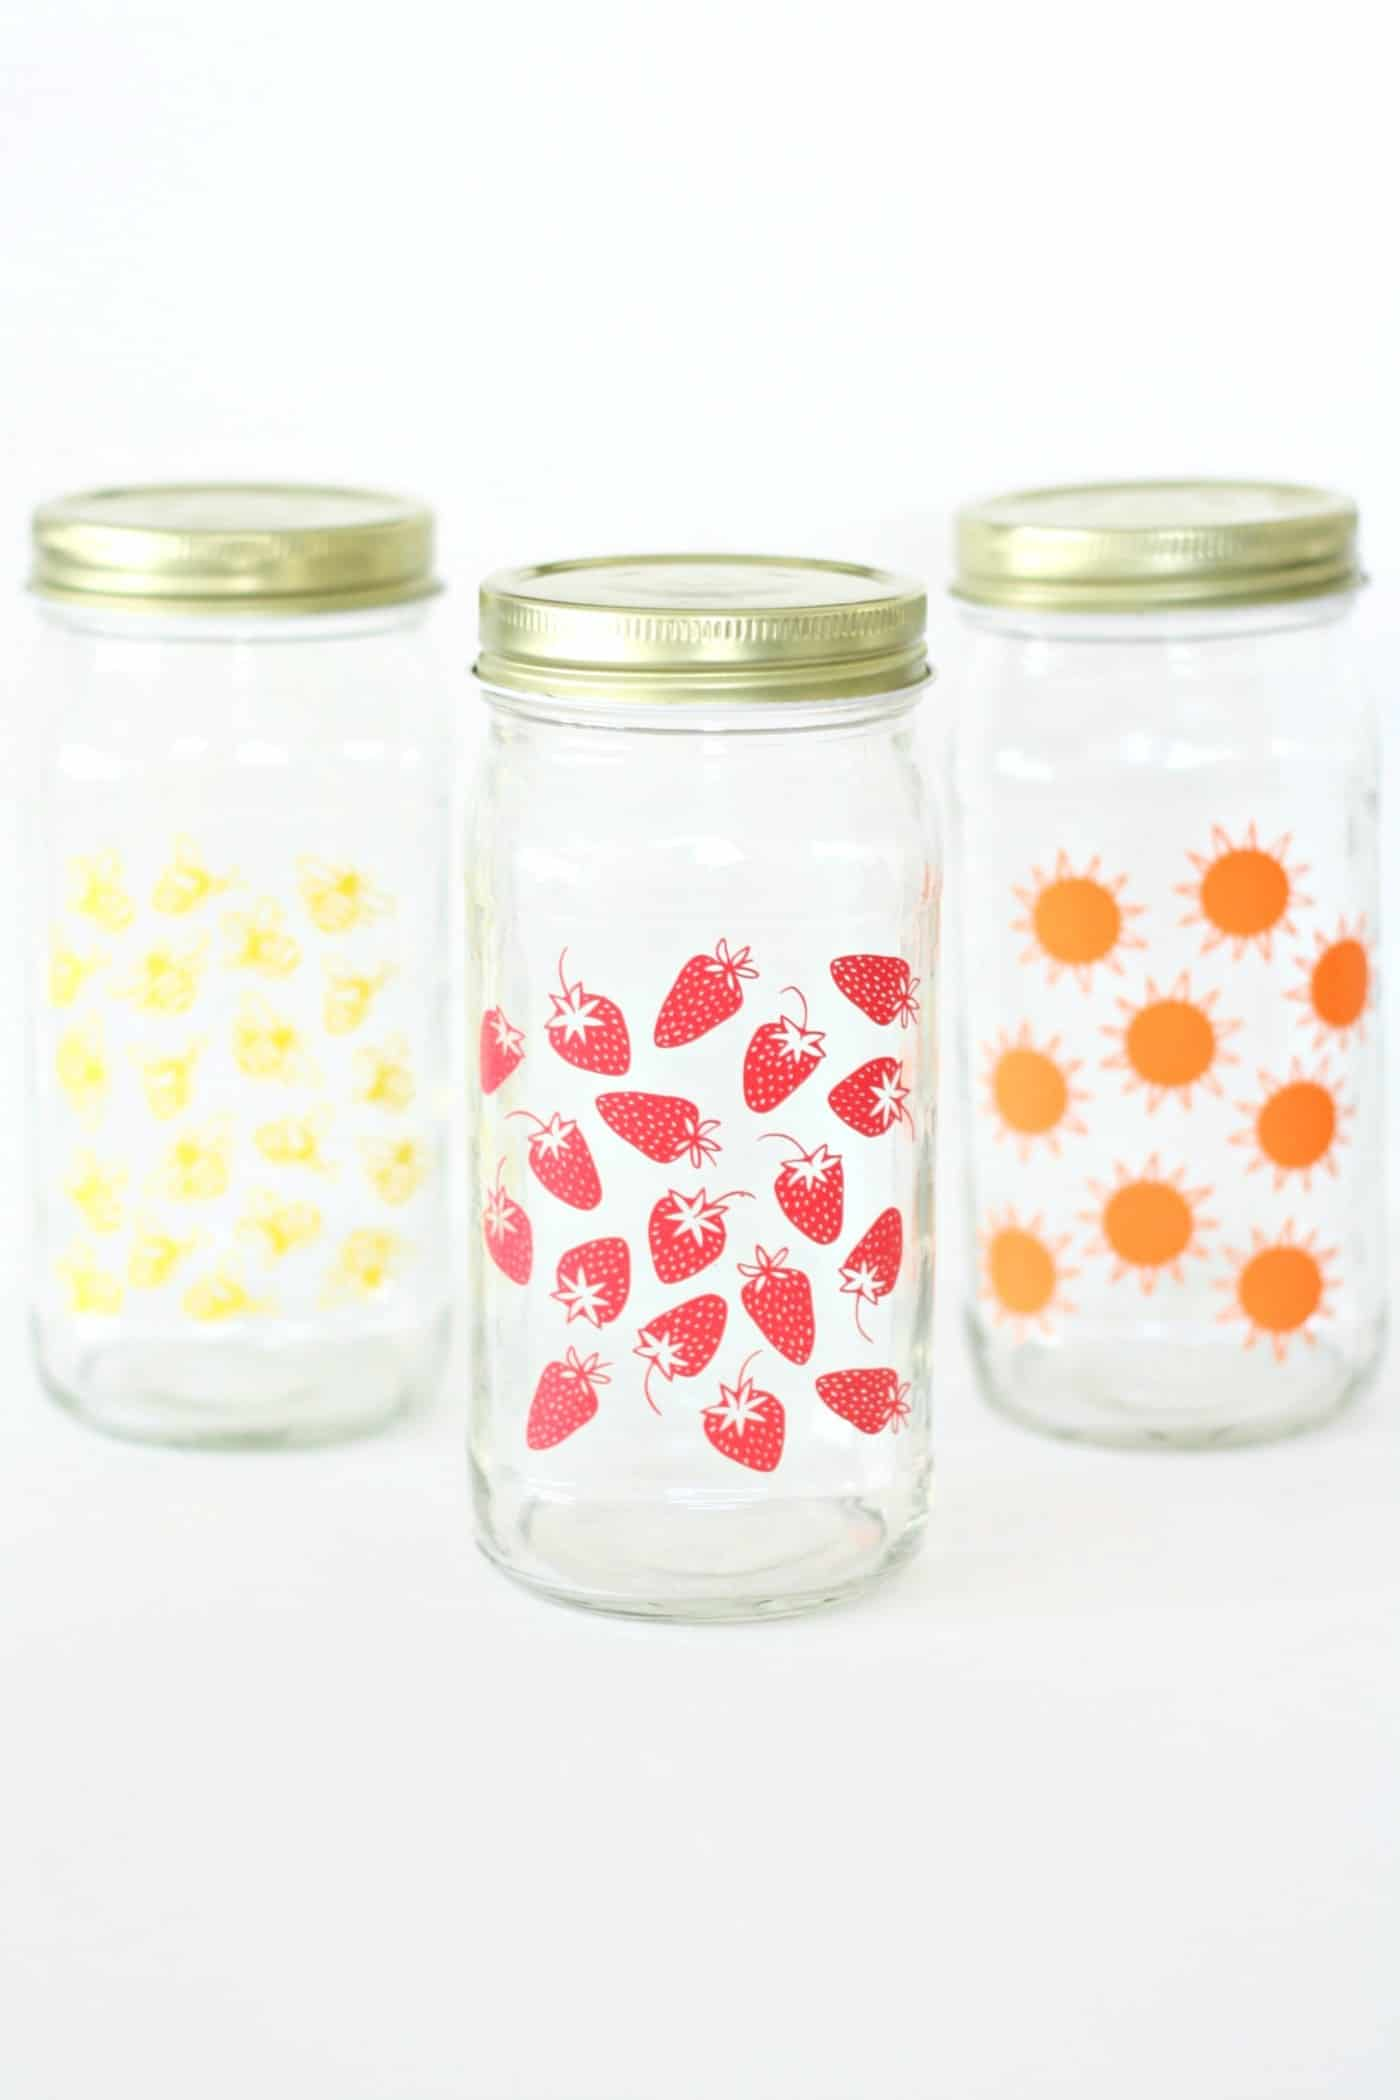 Follow this simple tutorial to upcycle a glass jar you have hanging out in your pantry. This summer craft is perfect for parties and picnics!